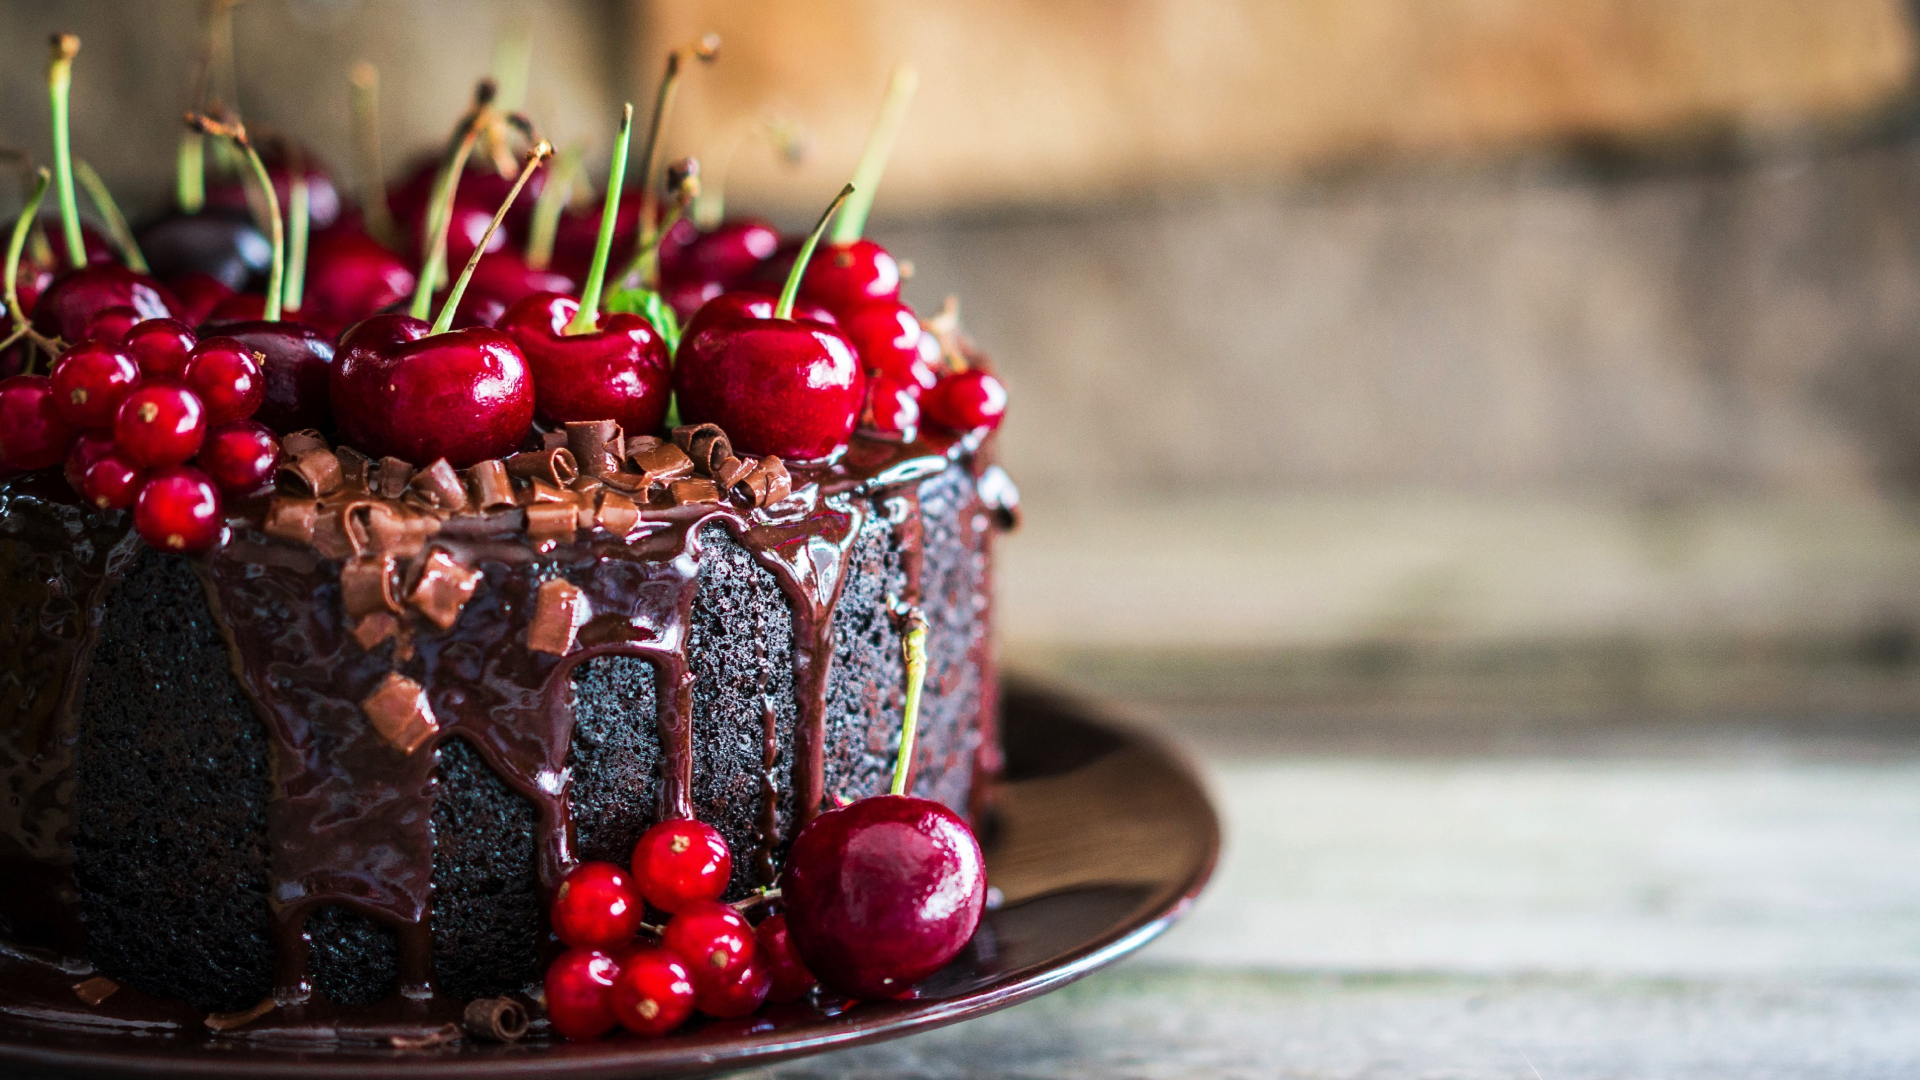 Download 1920x1080 Wallpaper Cherries Chocolate Cake Food Full Hd Hdtv Fhd 1080p 1920x1080 Hd Image Background 2349